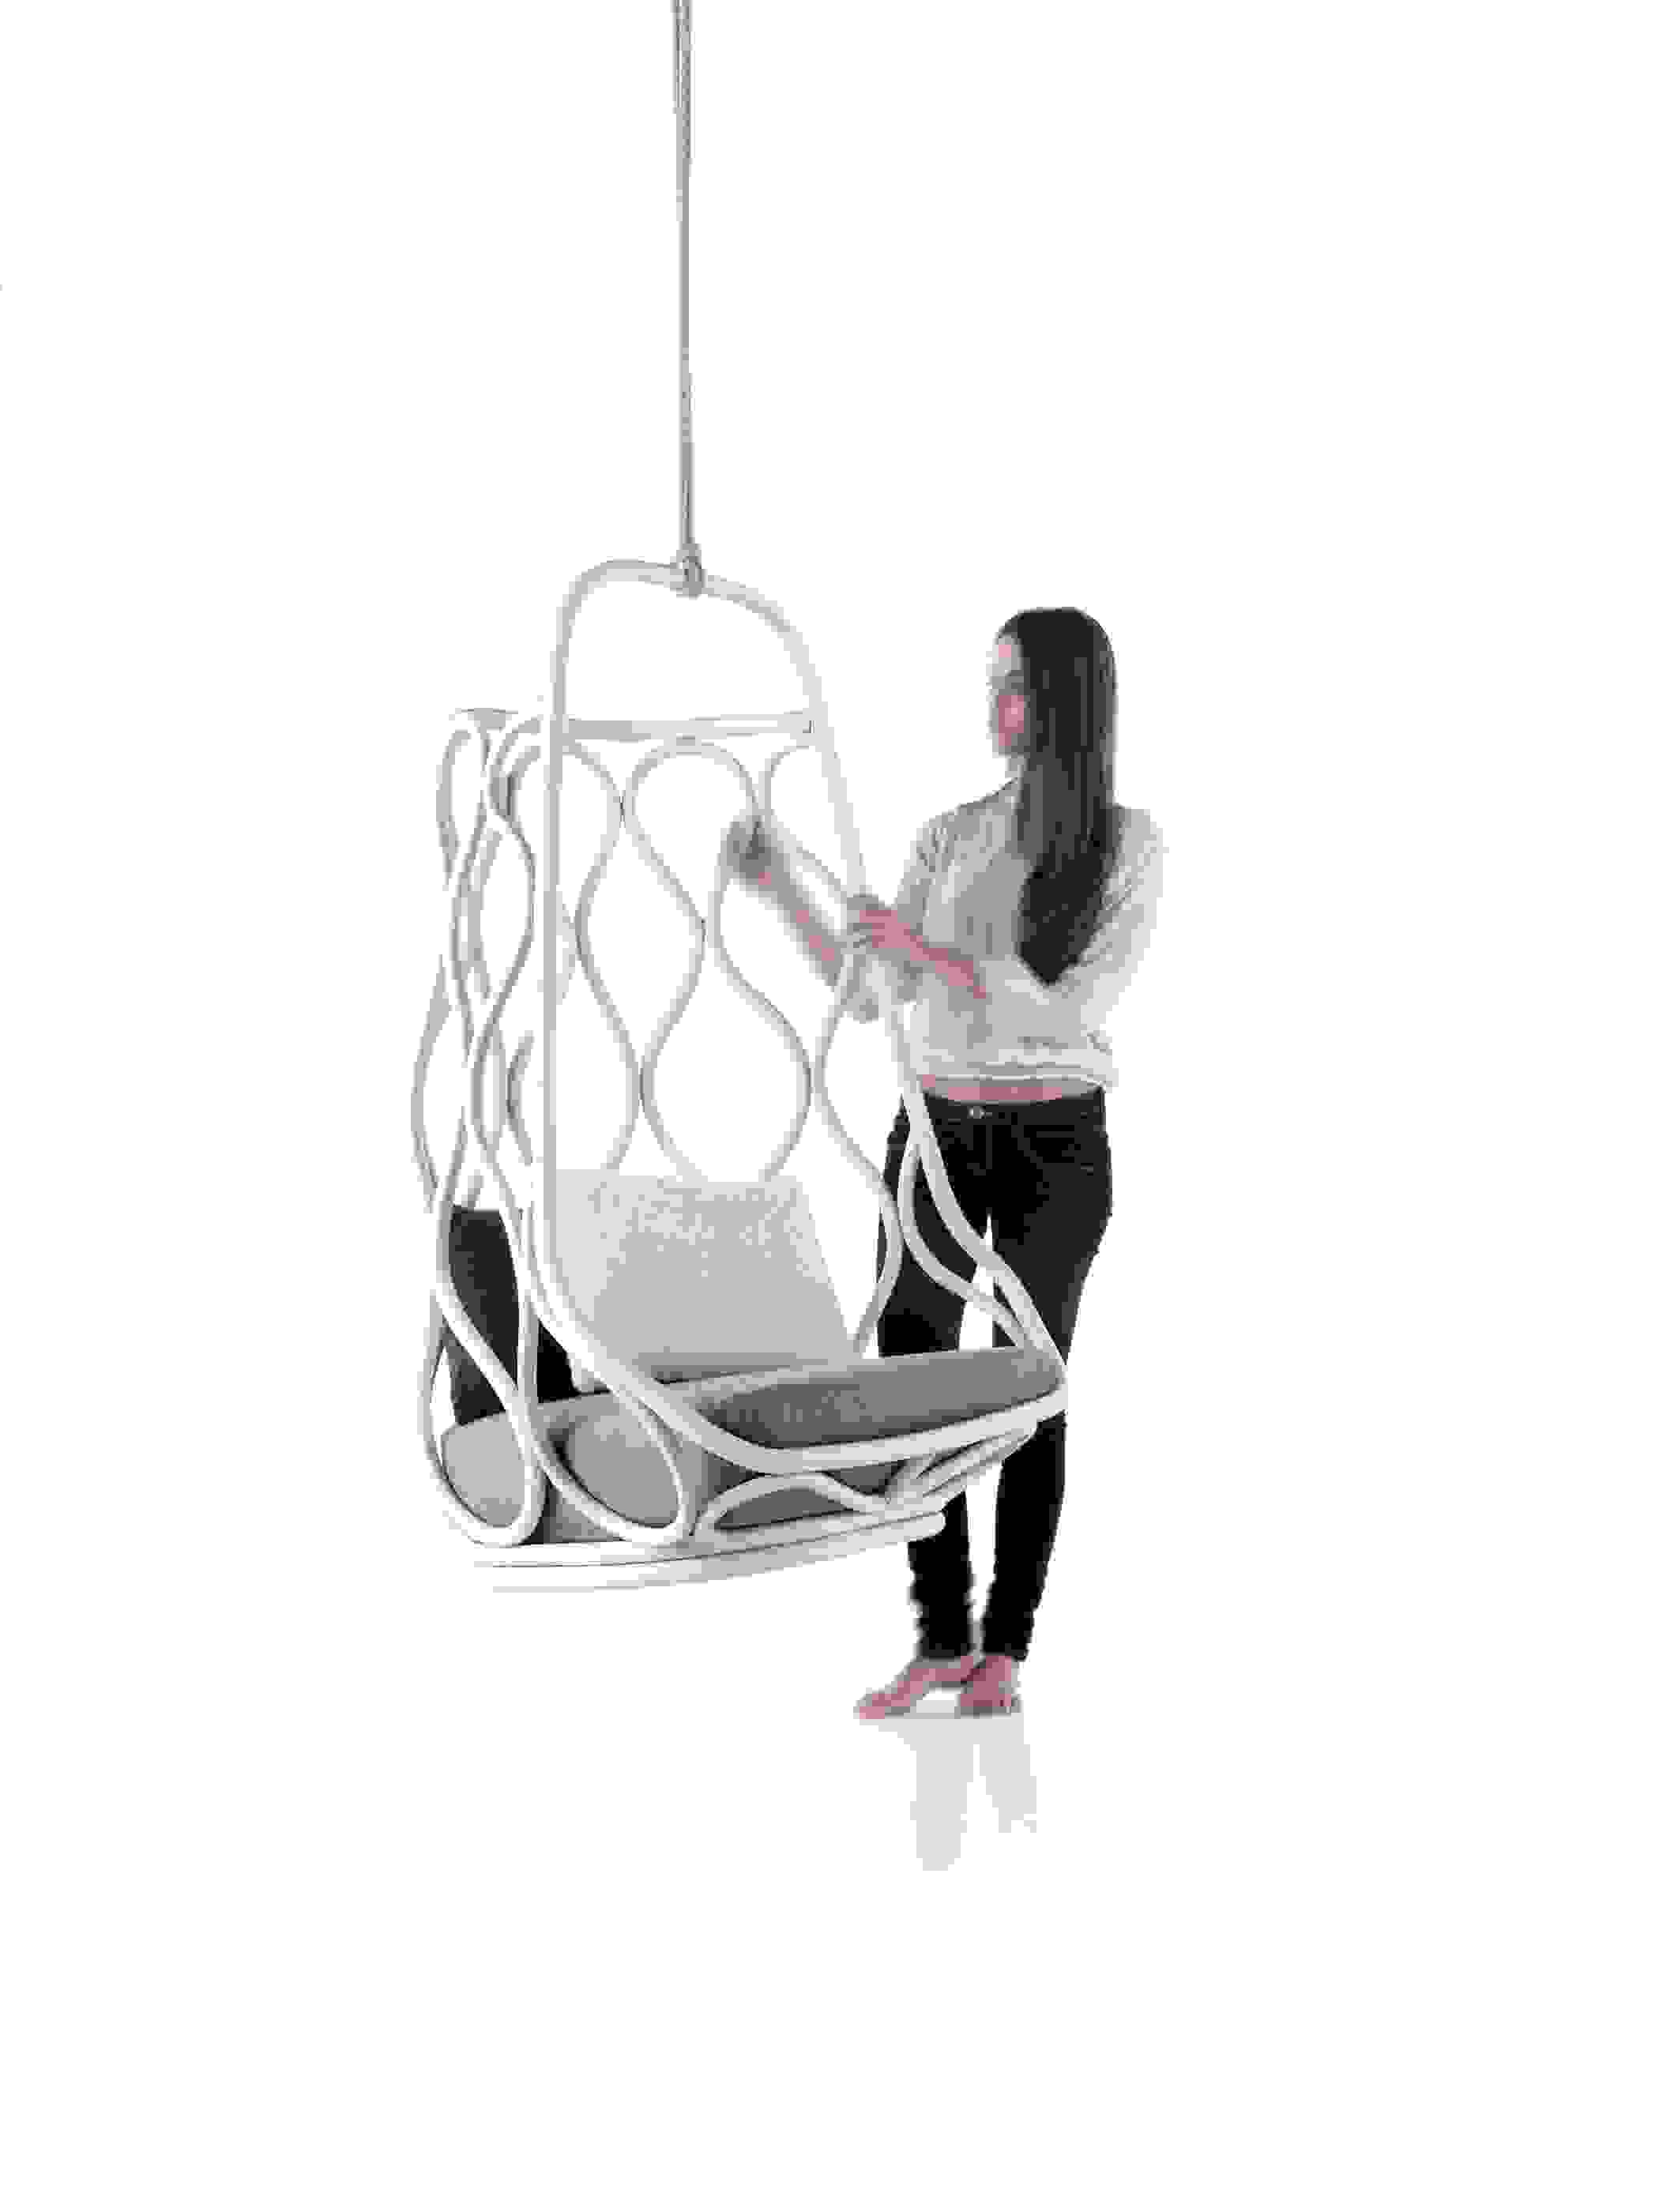 68-expormim-nautica-indoor-hanging-chair-mut-design.jpg